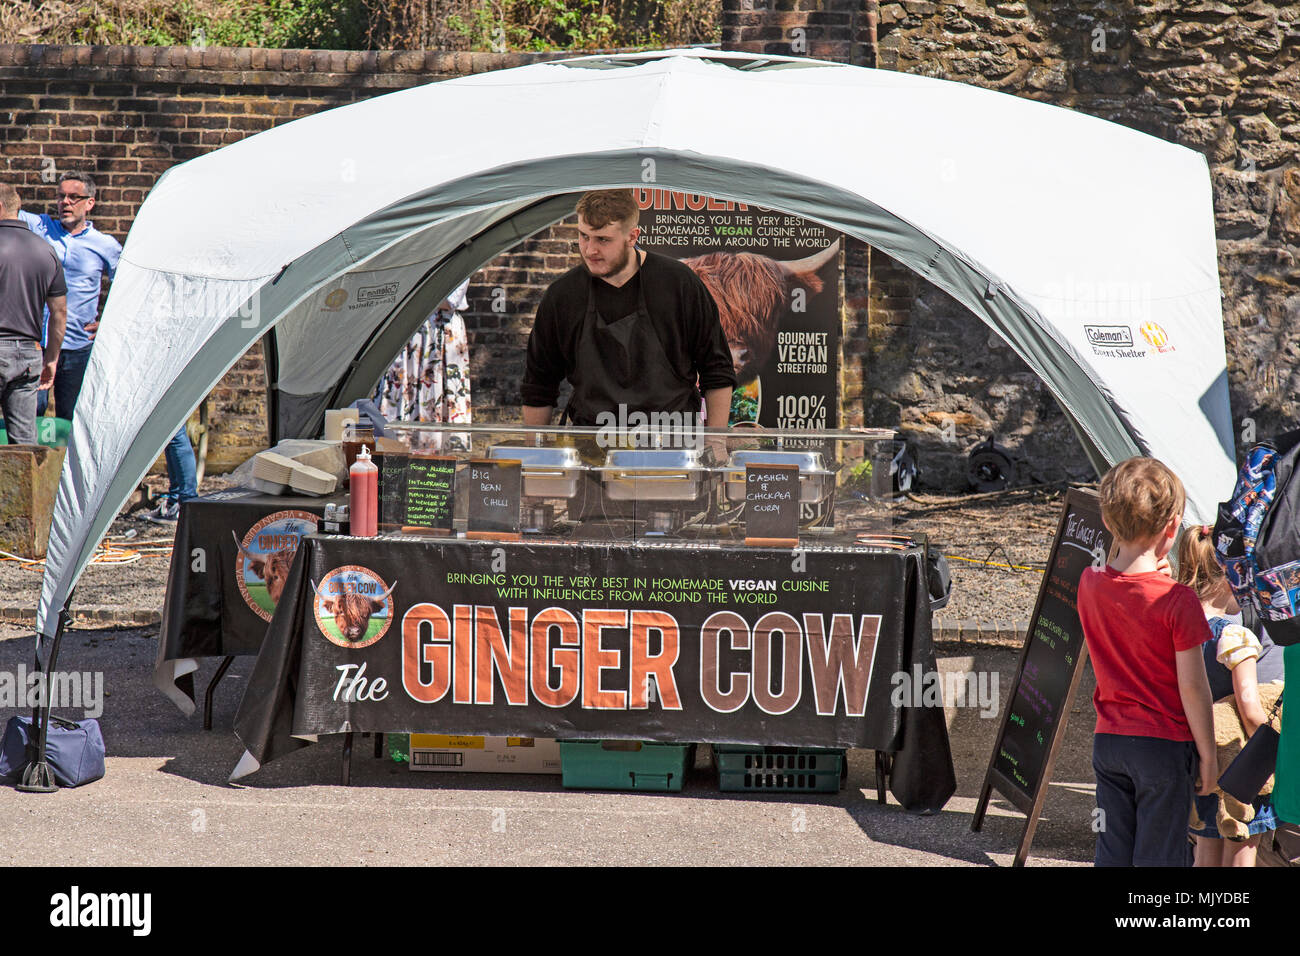 A stall called Ginger Cow selling vegan food at a street food festival in England. - Stock Image